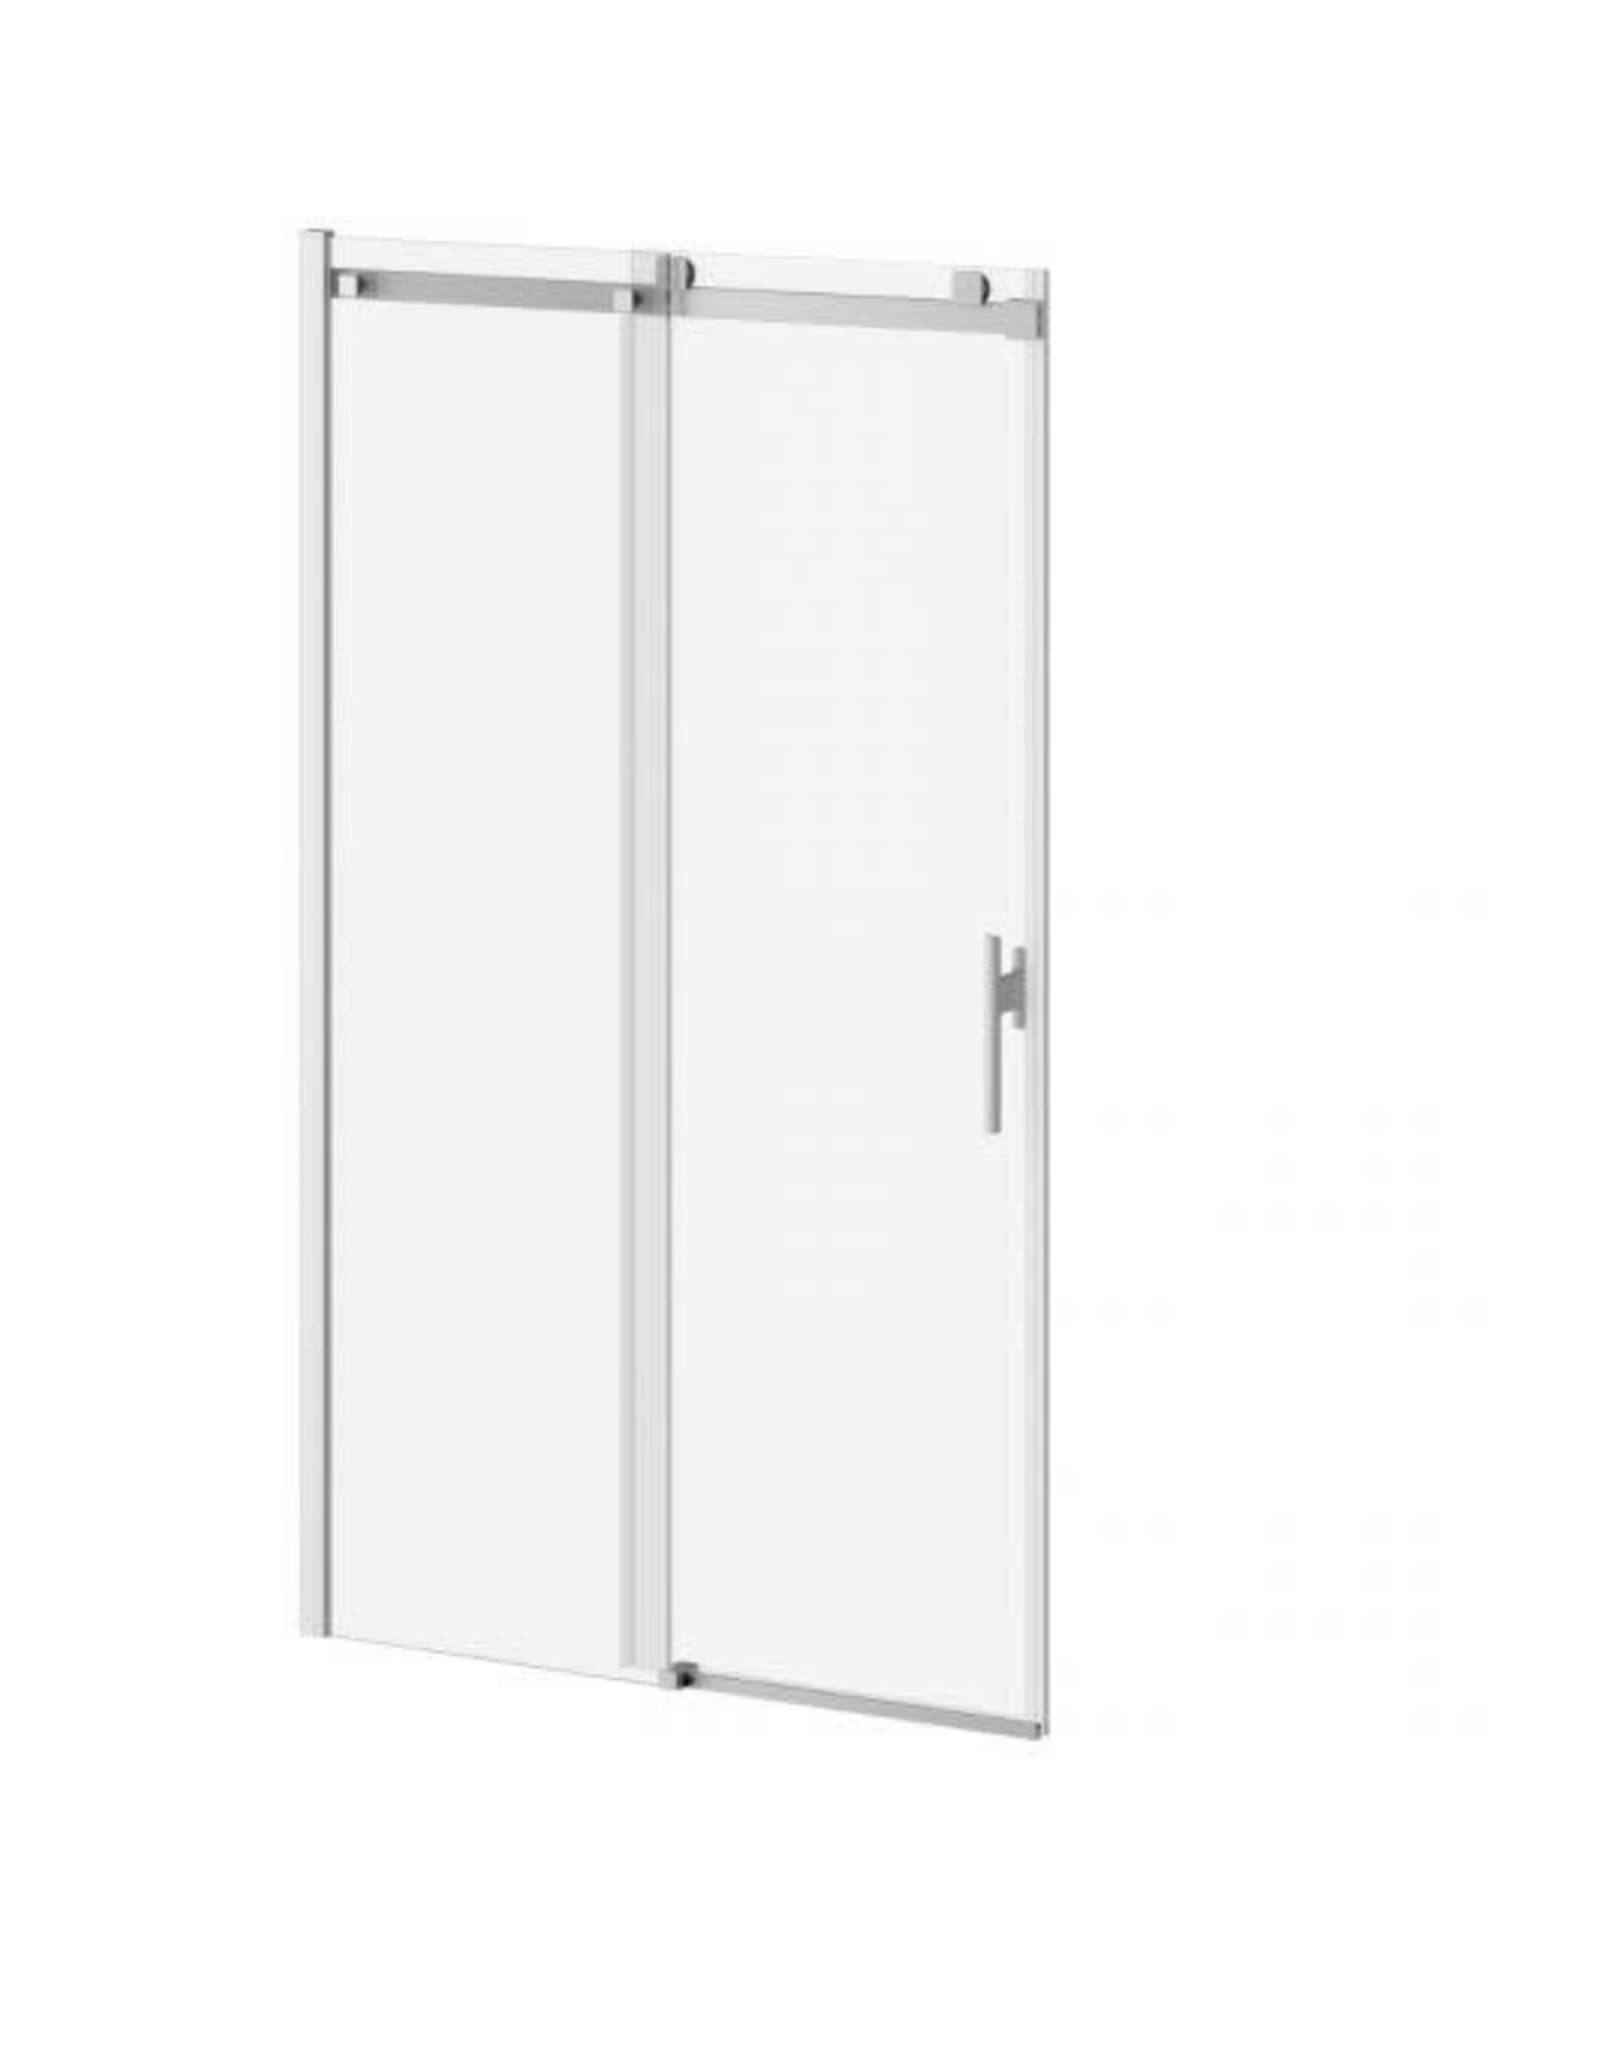 Kalia Kalia Koncept Evo Shower Door Chrome/Clear 48""